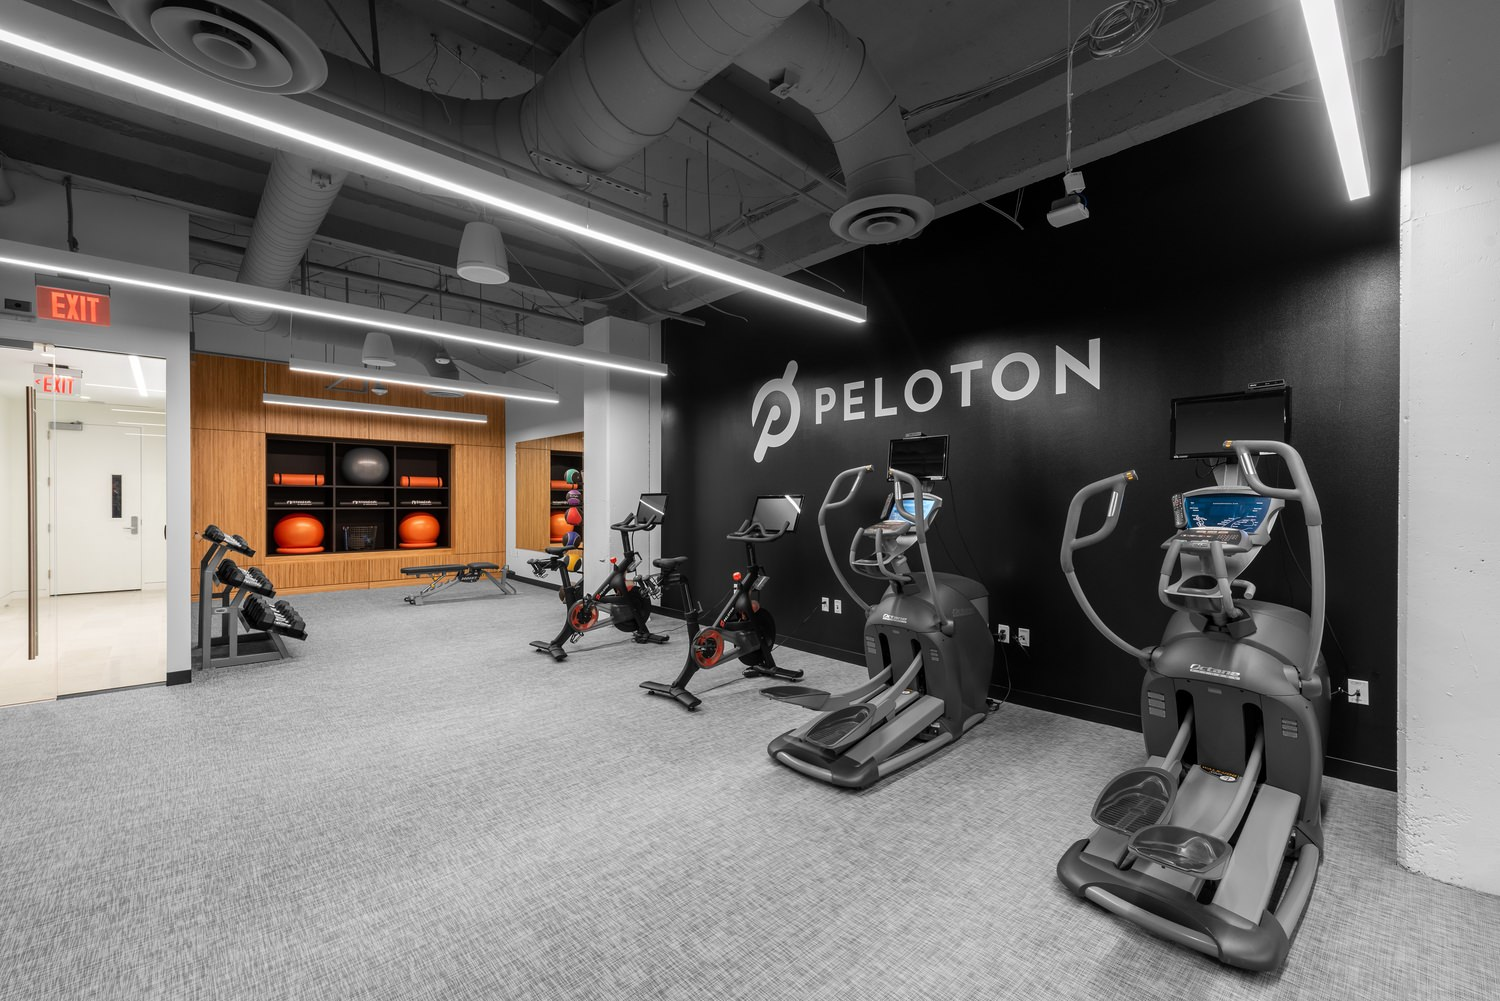 A gym that has stationary bicycles as well as elliptical machines and the word peloton is on the wall.